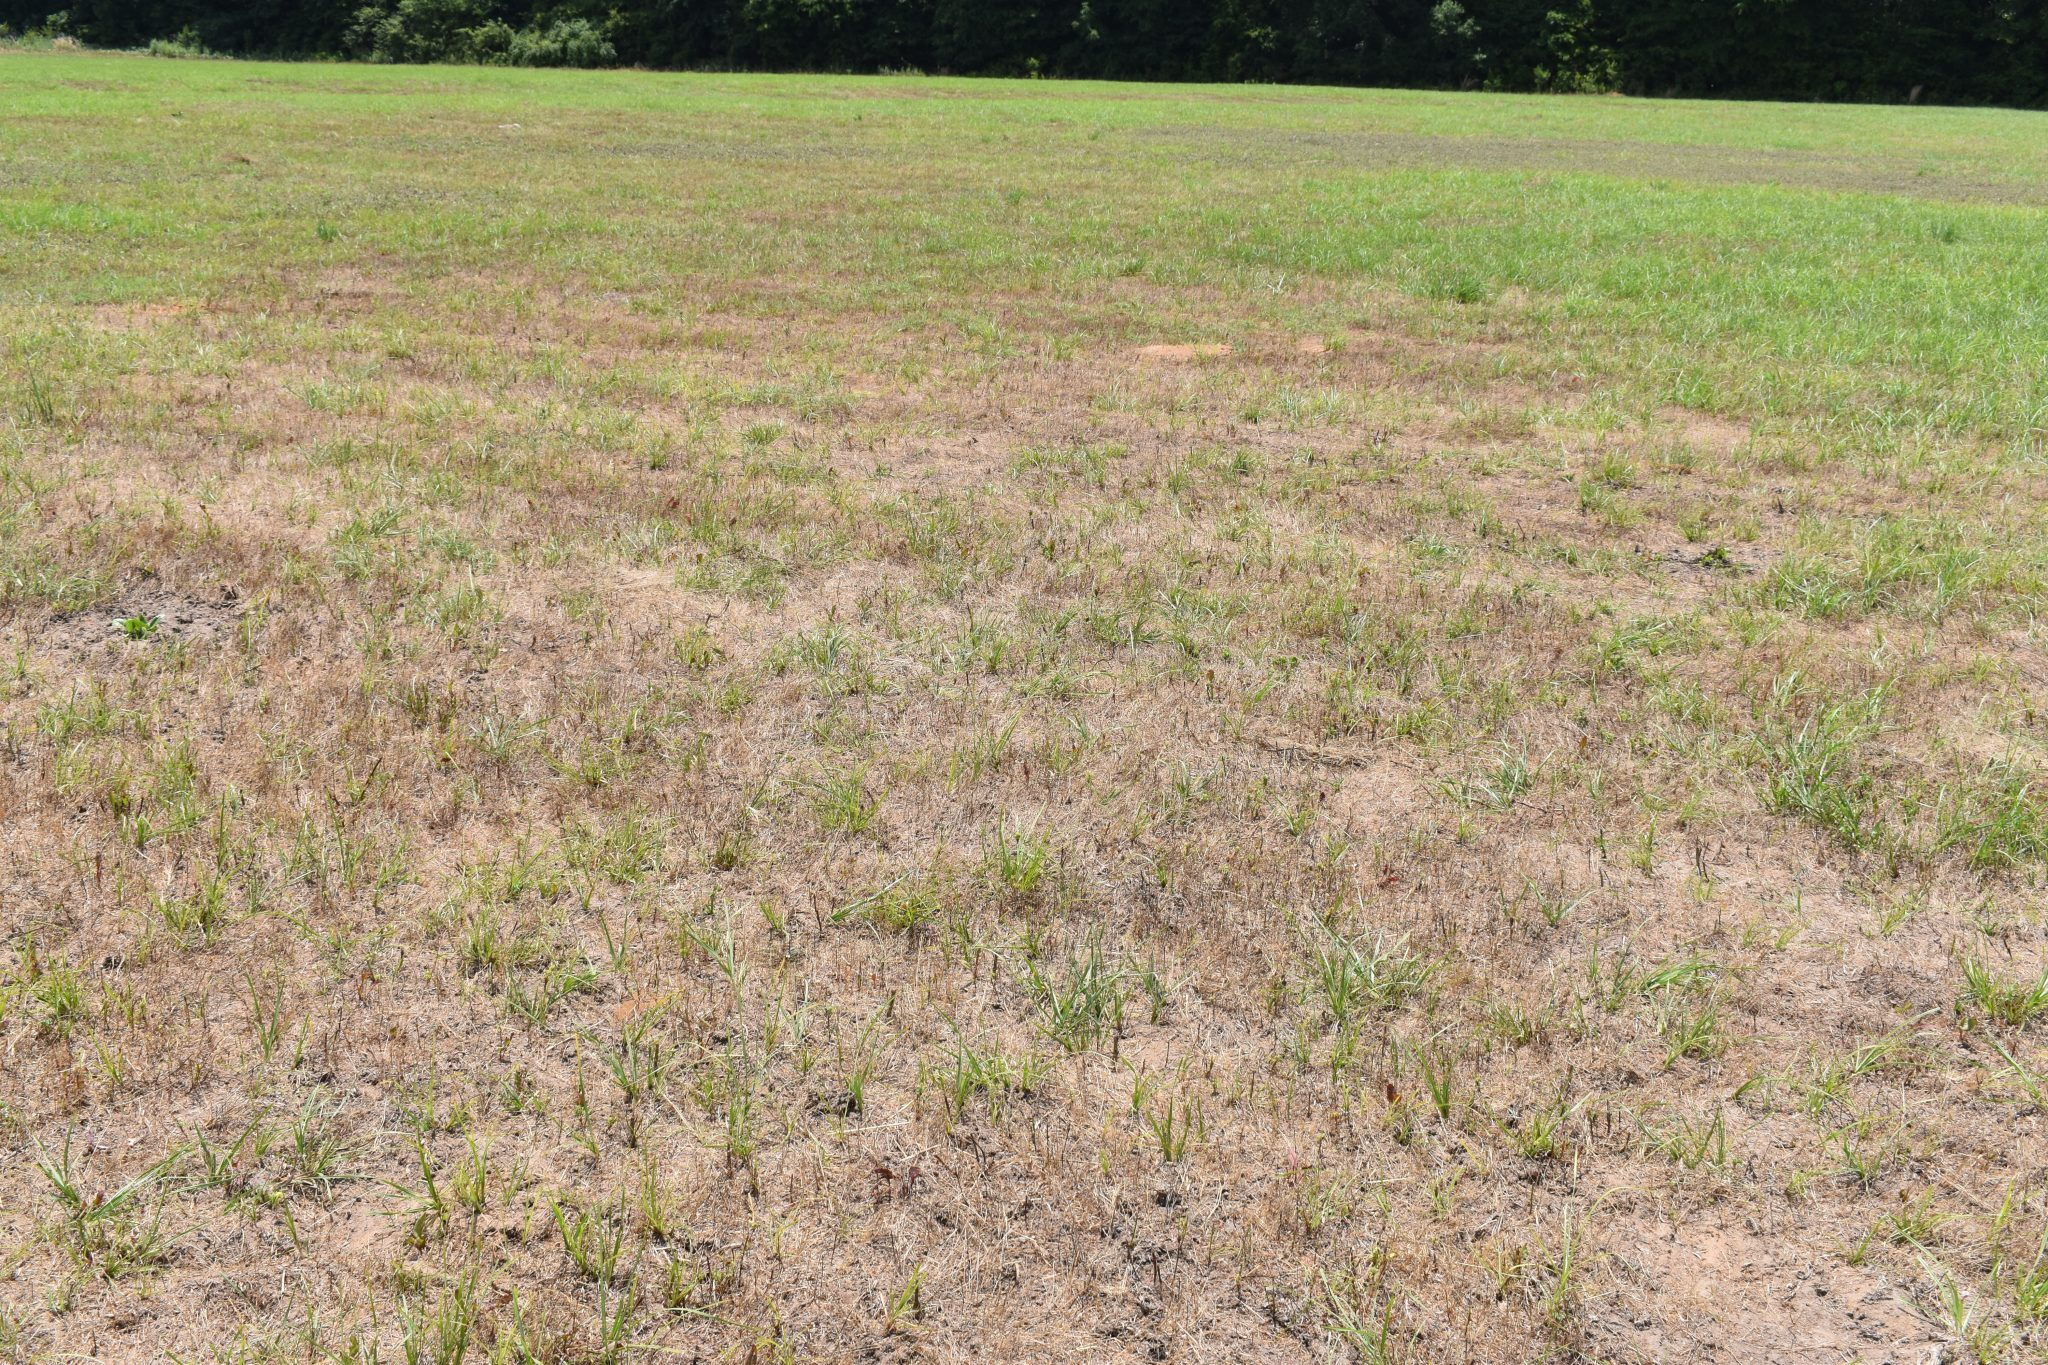 Bahiagrass field damaged by billbugs